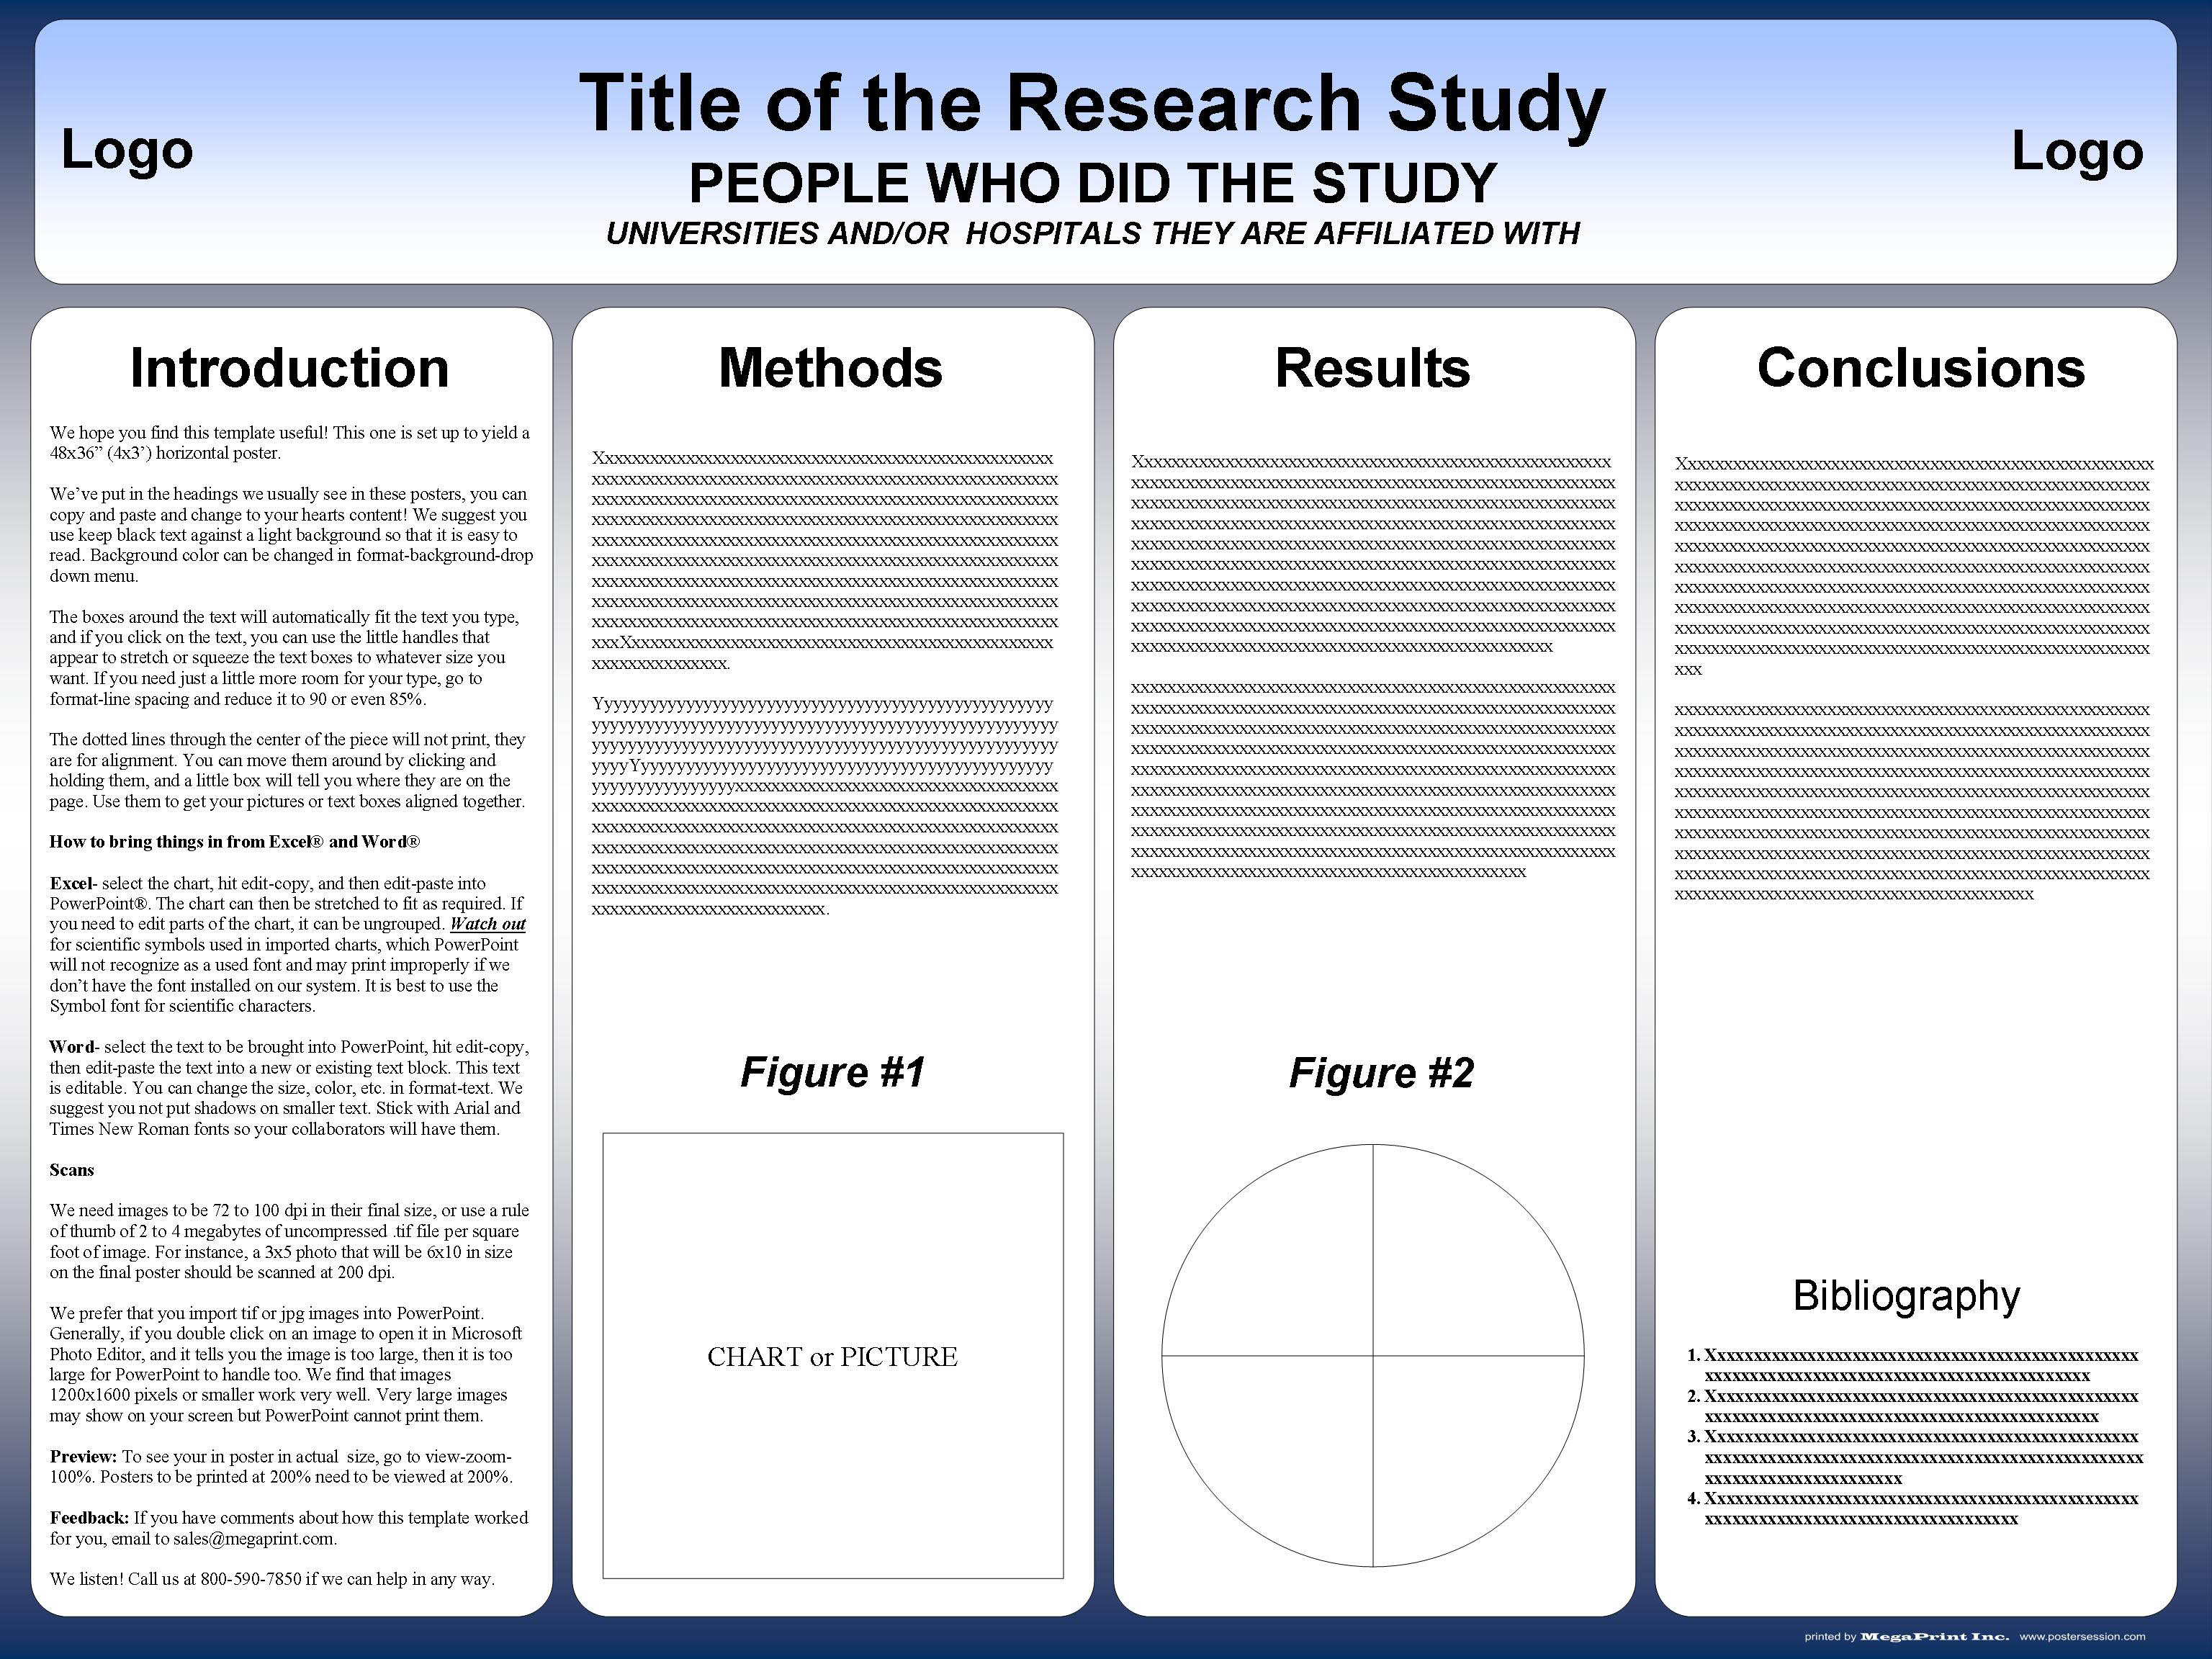 Research Poster Templates | postersession